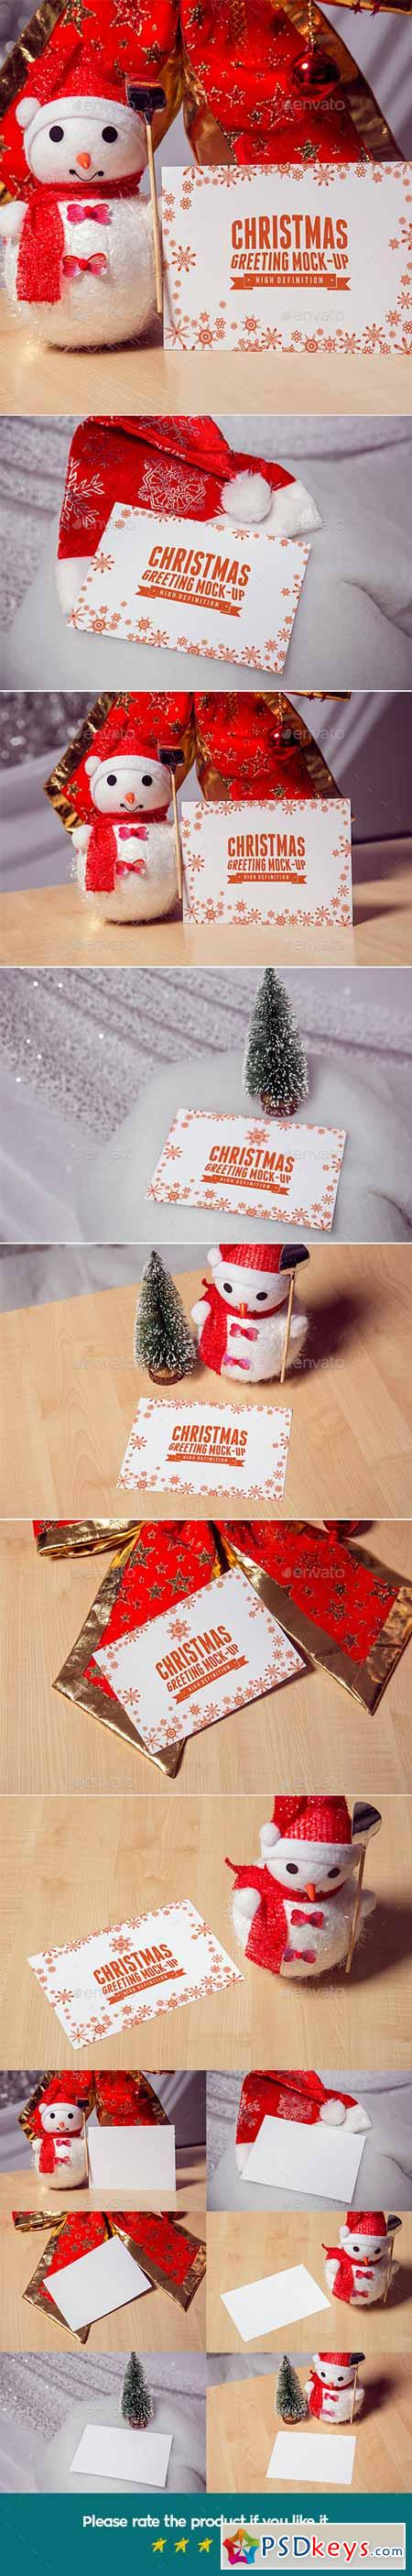 Photorealistic Christmas greeting Mock-Up 13913189